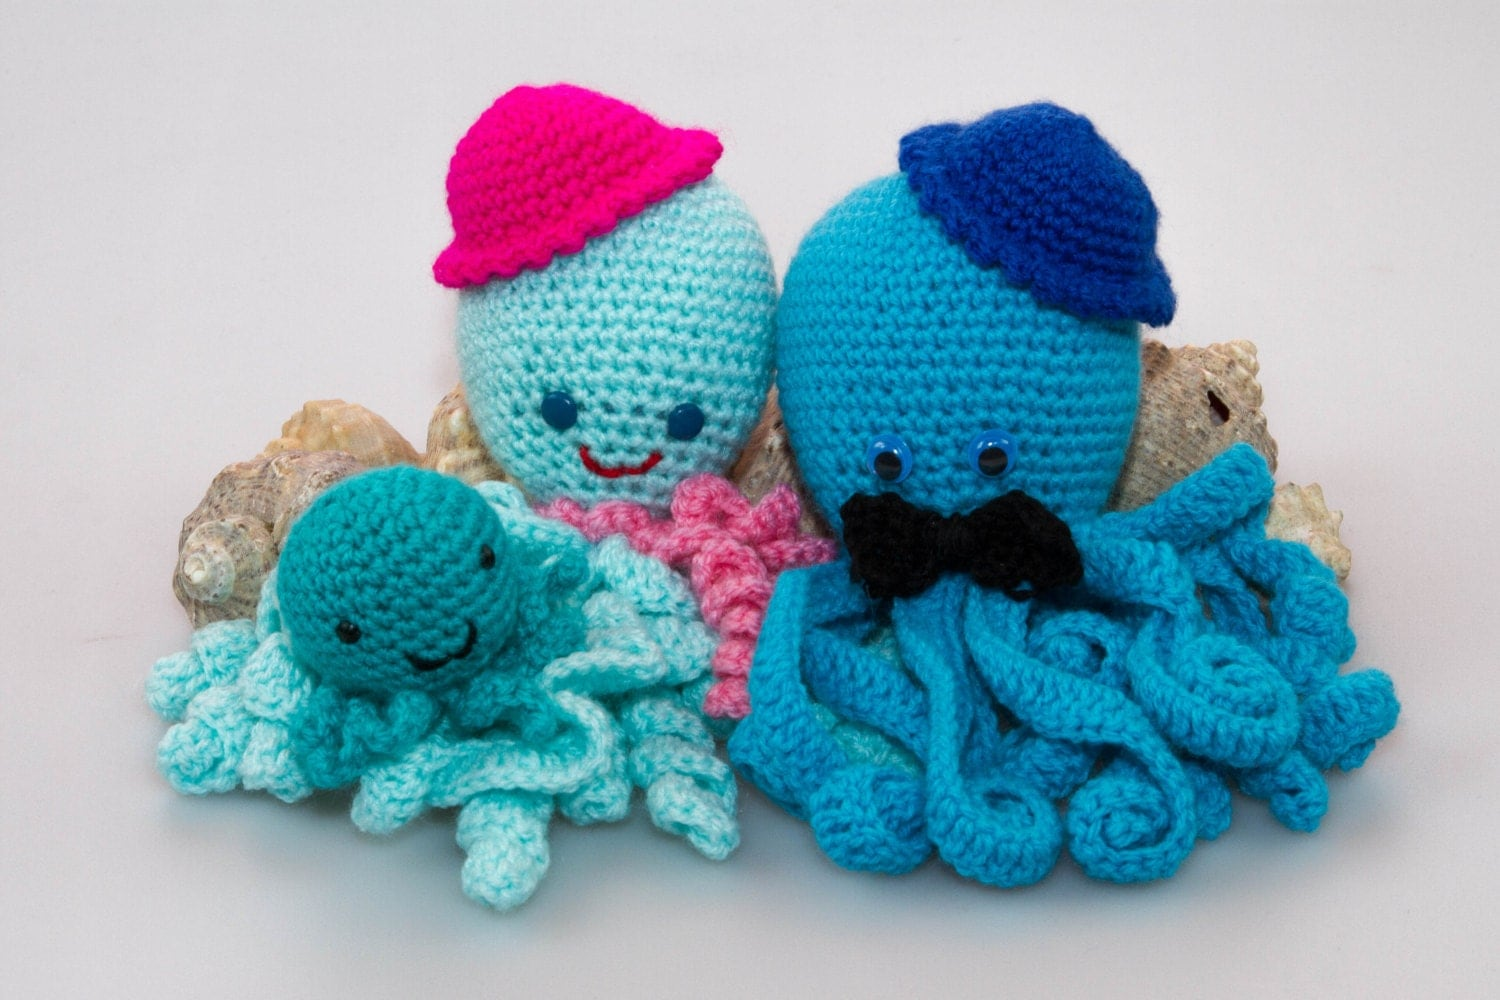 Amigurumi jellyfish crochet pattern amigurumi crochet toys amigurumi jellyfish crochet pattern amigurumi crochet toys crocheted octopus crochet sea animal octopus crochet crochet tutorial p034 bankloansurffo Images